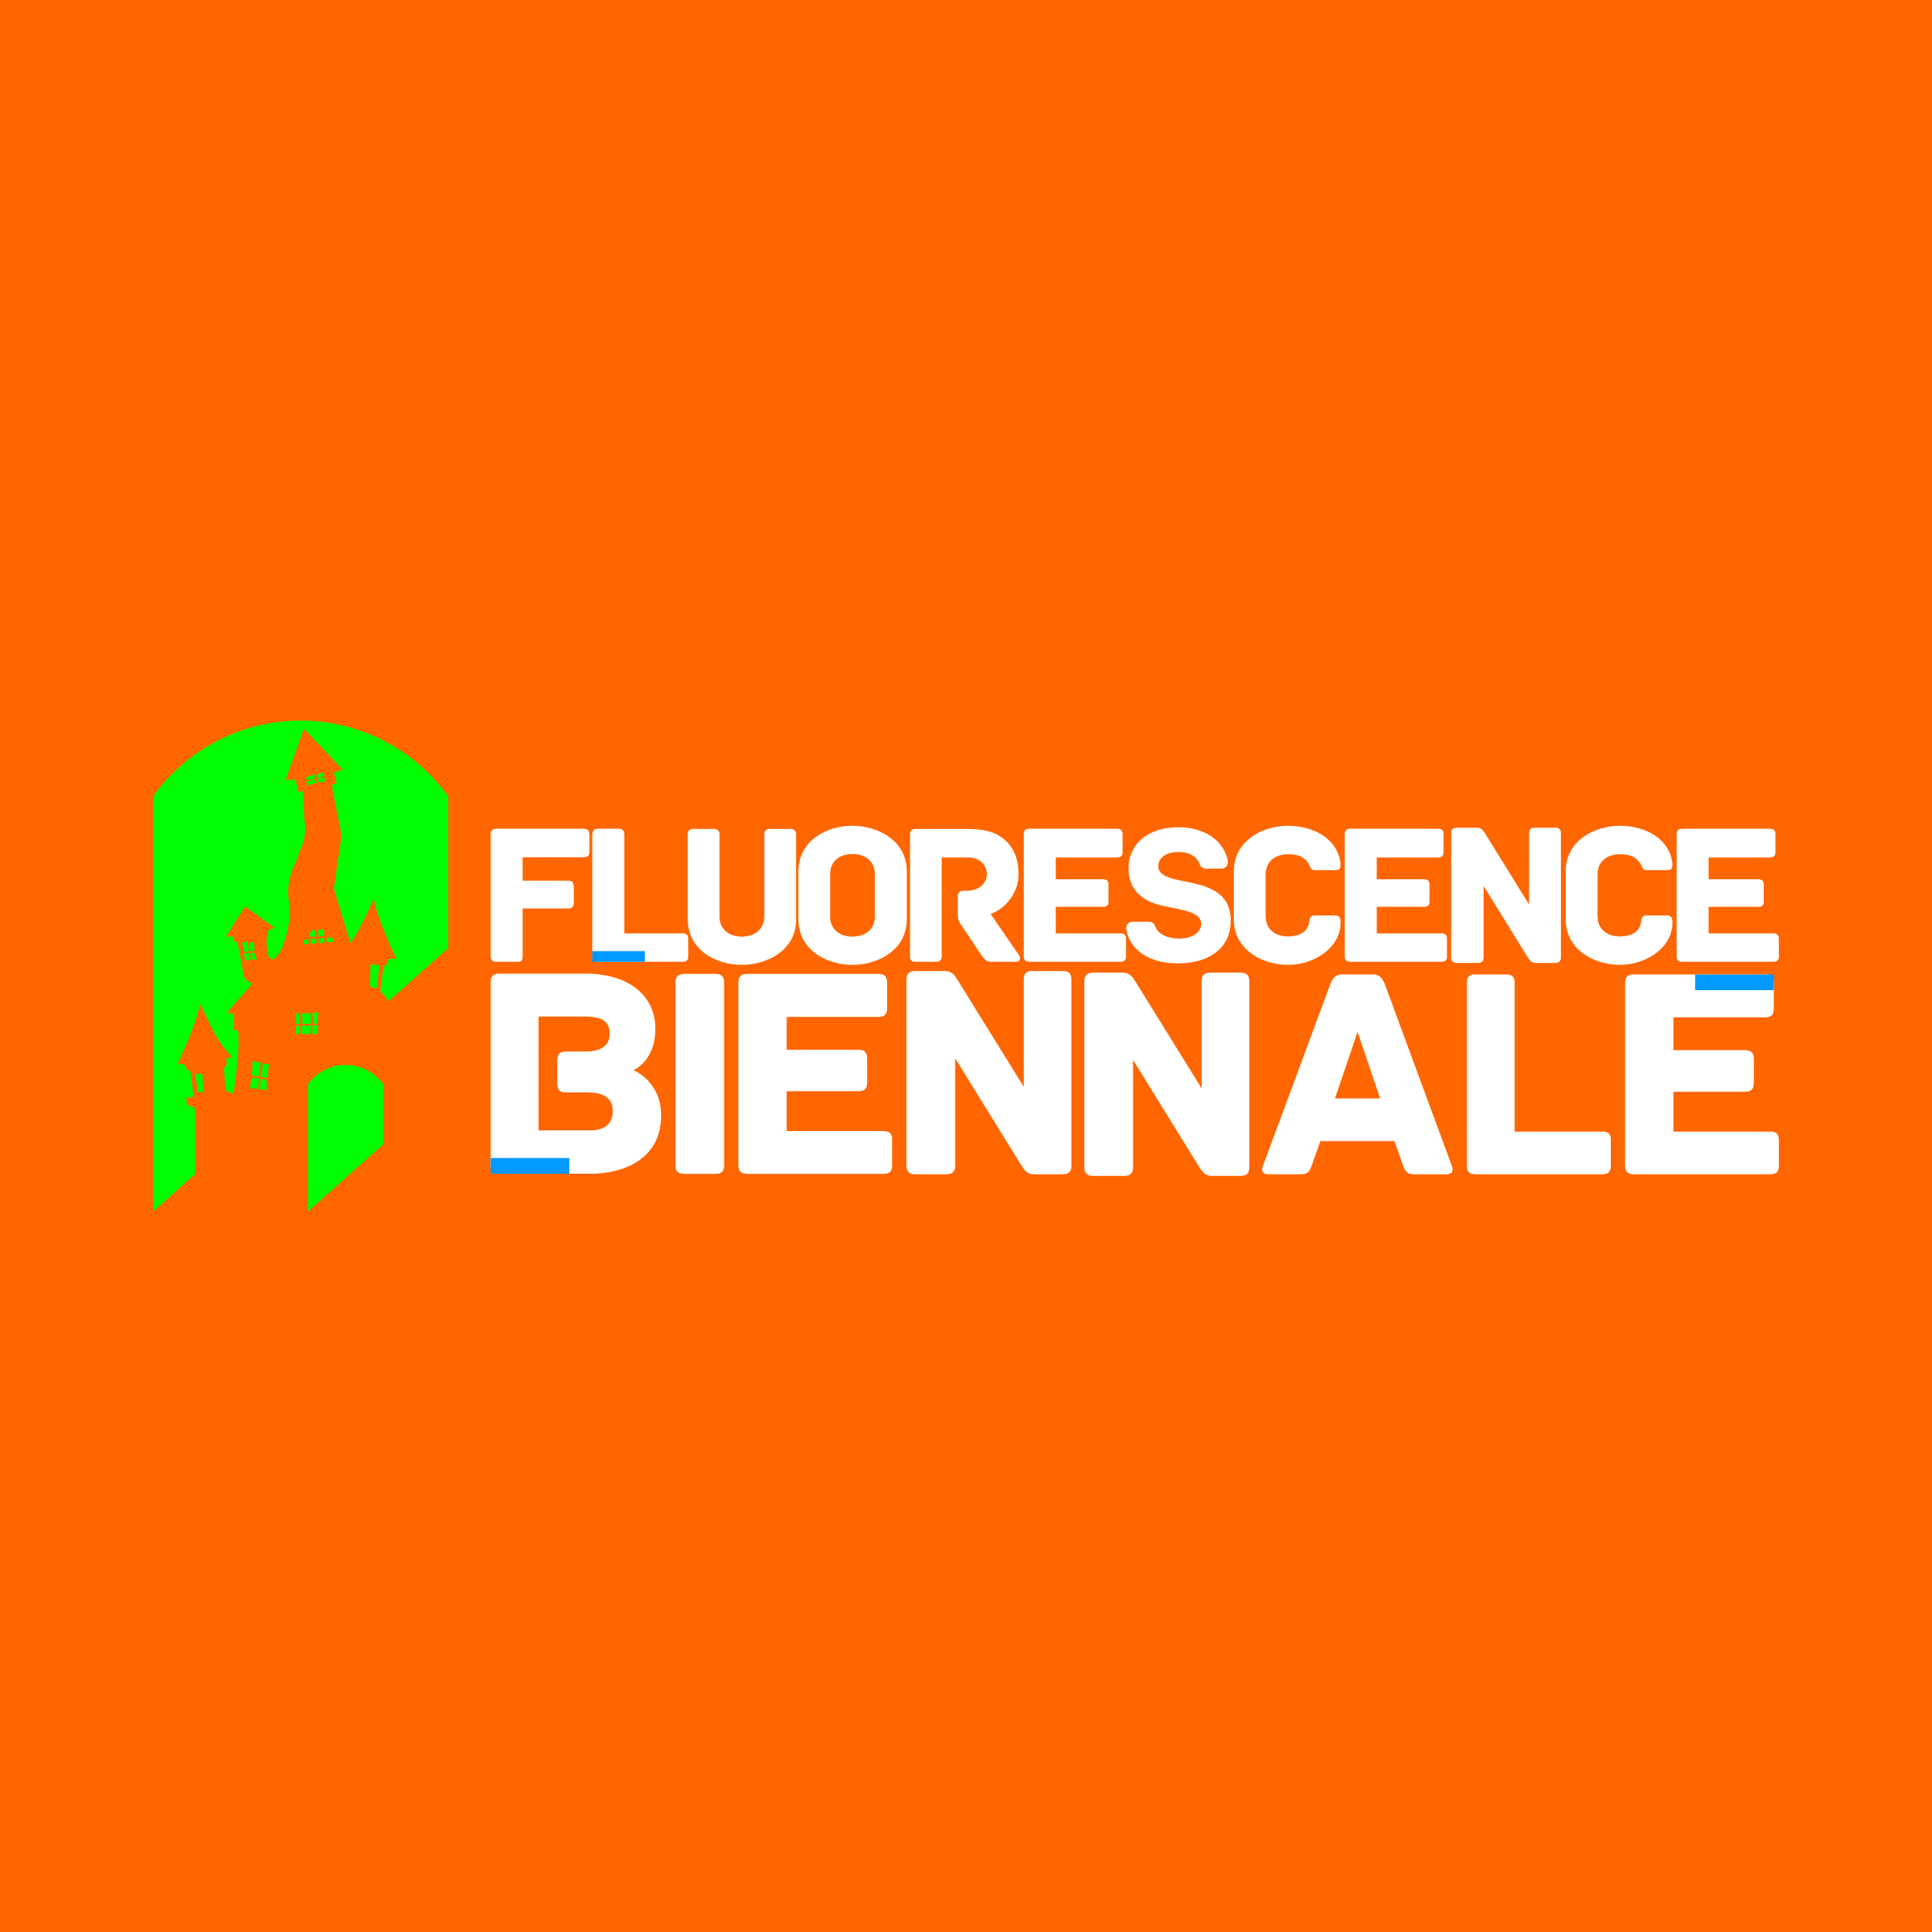 Fluorescence Biennale by Pako Campo